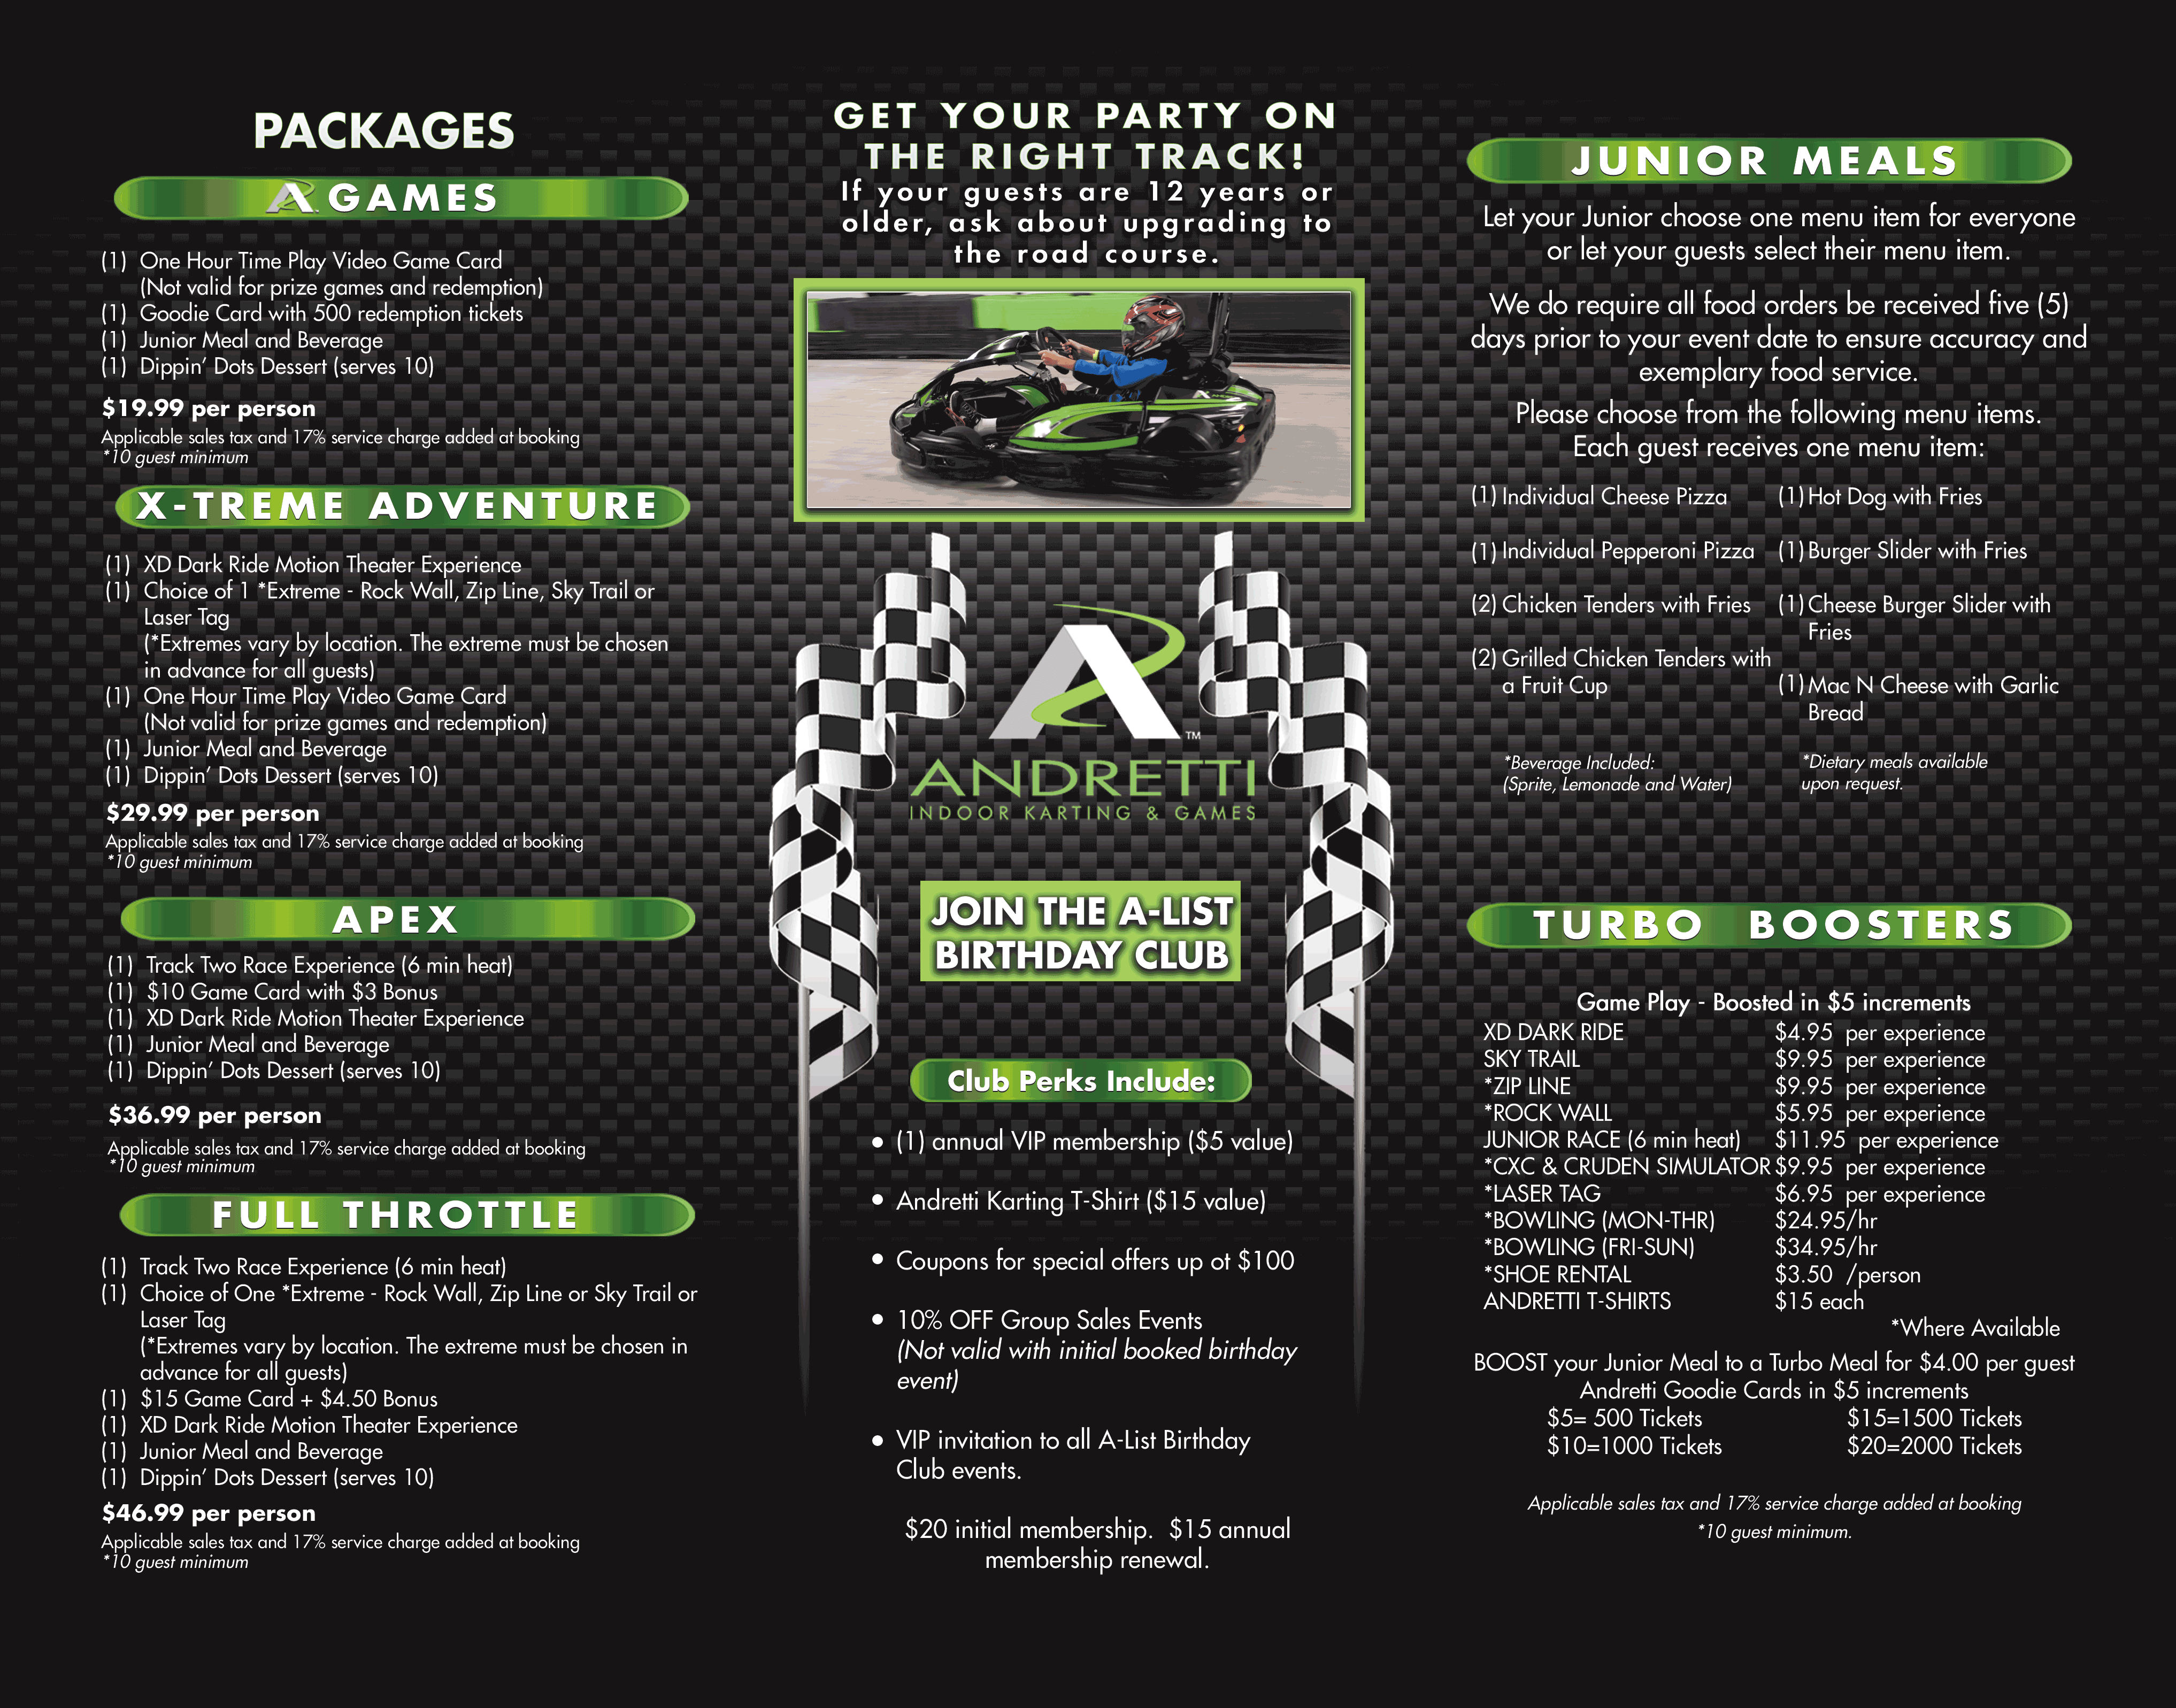 Andretti Karting Packages Start At 200 For 10 People Birthday Party Locations Game Food Kids Birthday